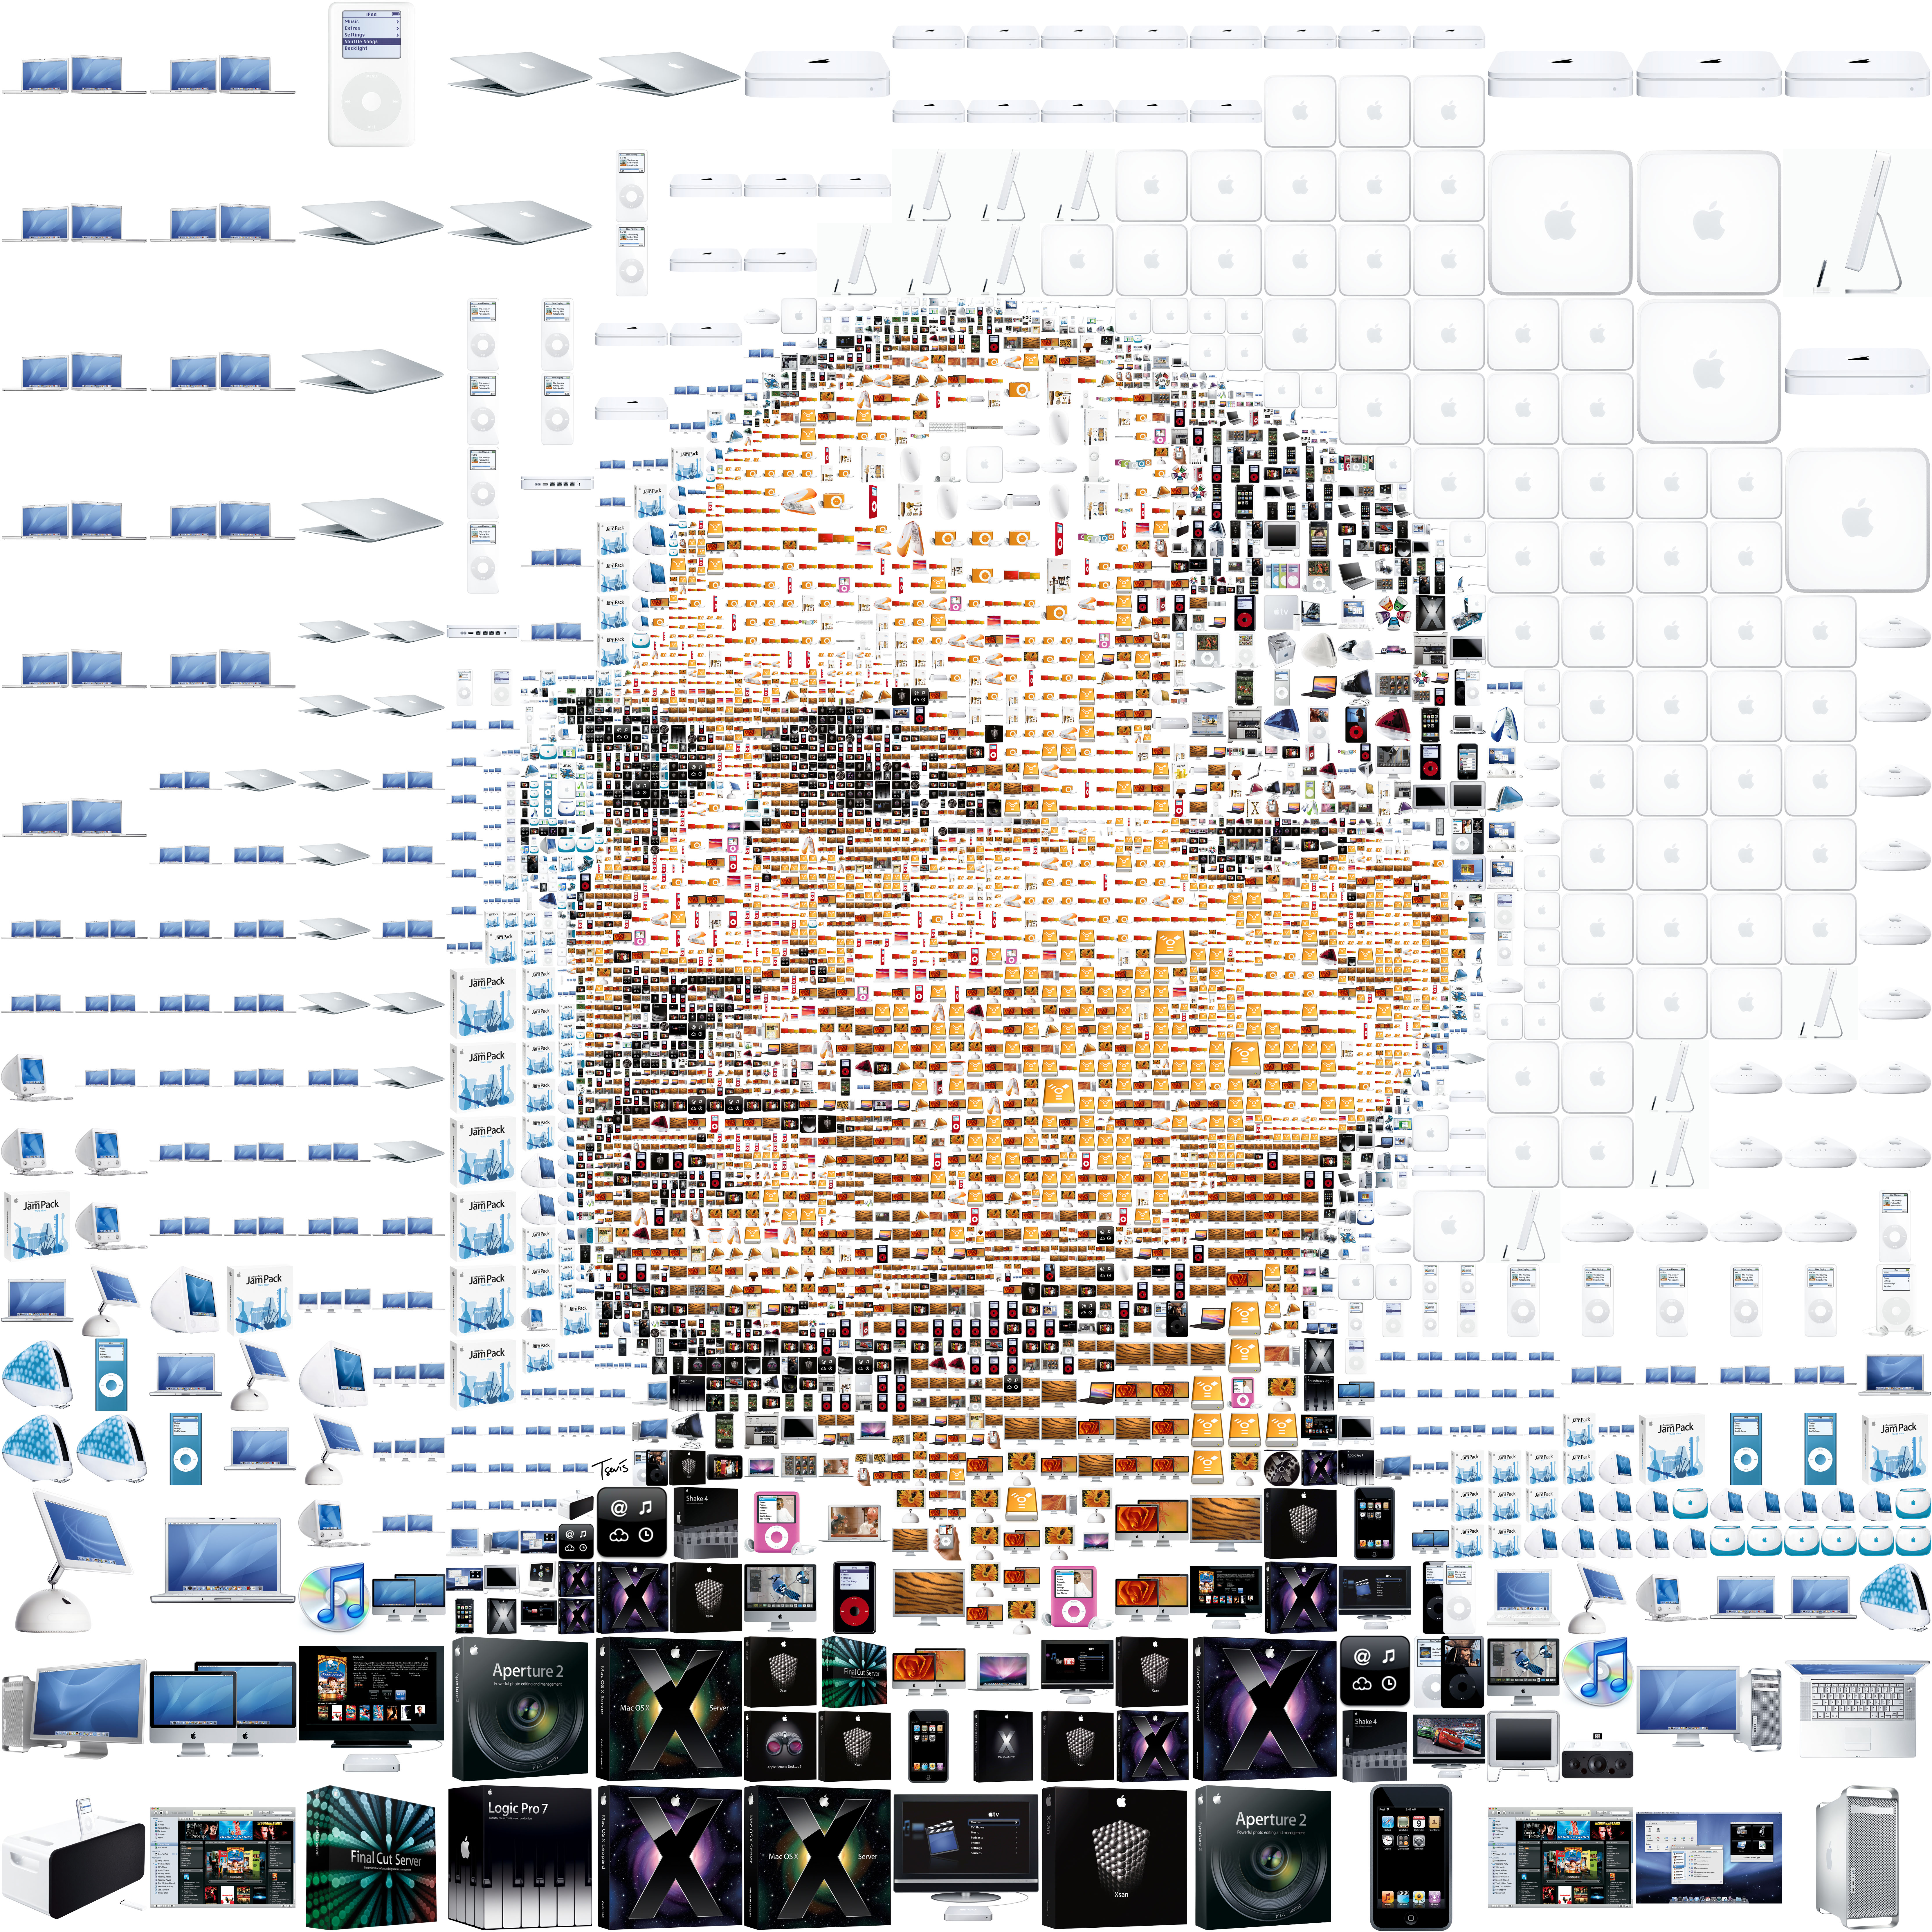 Retrato de Jobs a base de iconos de Apple